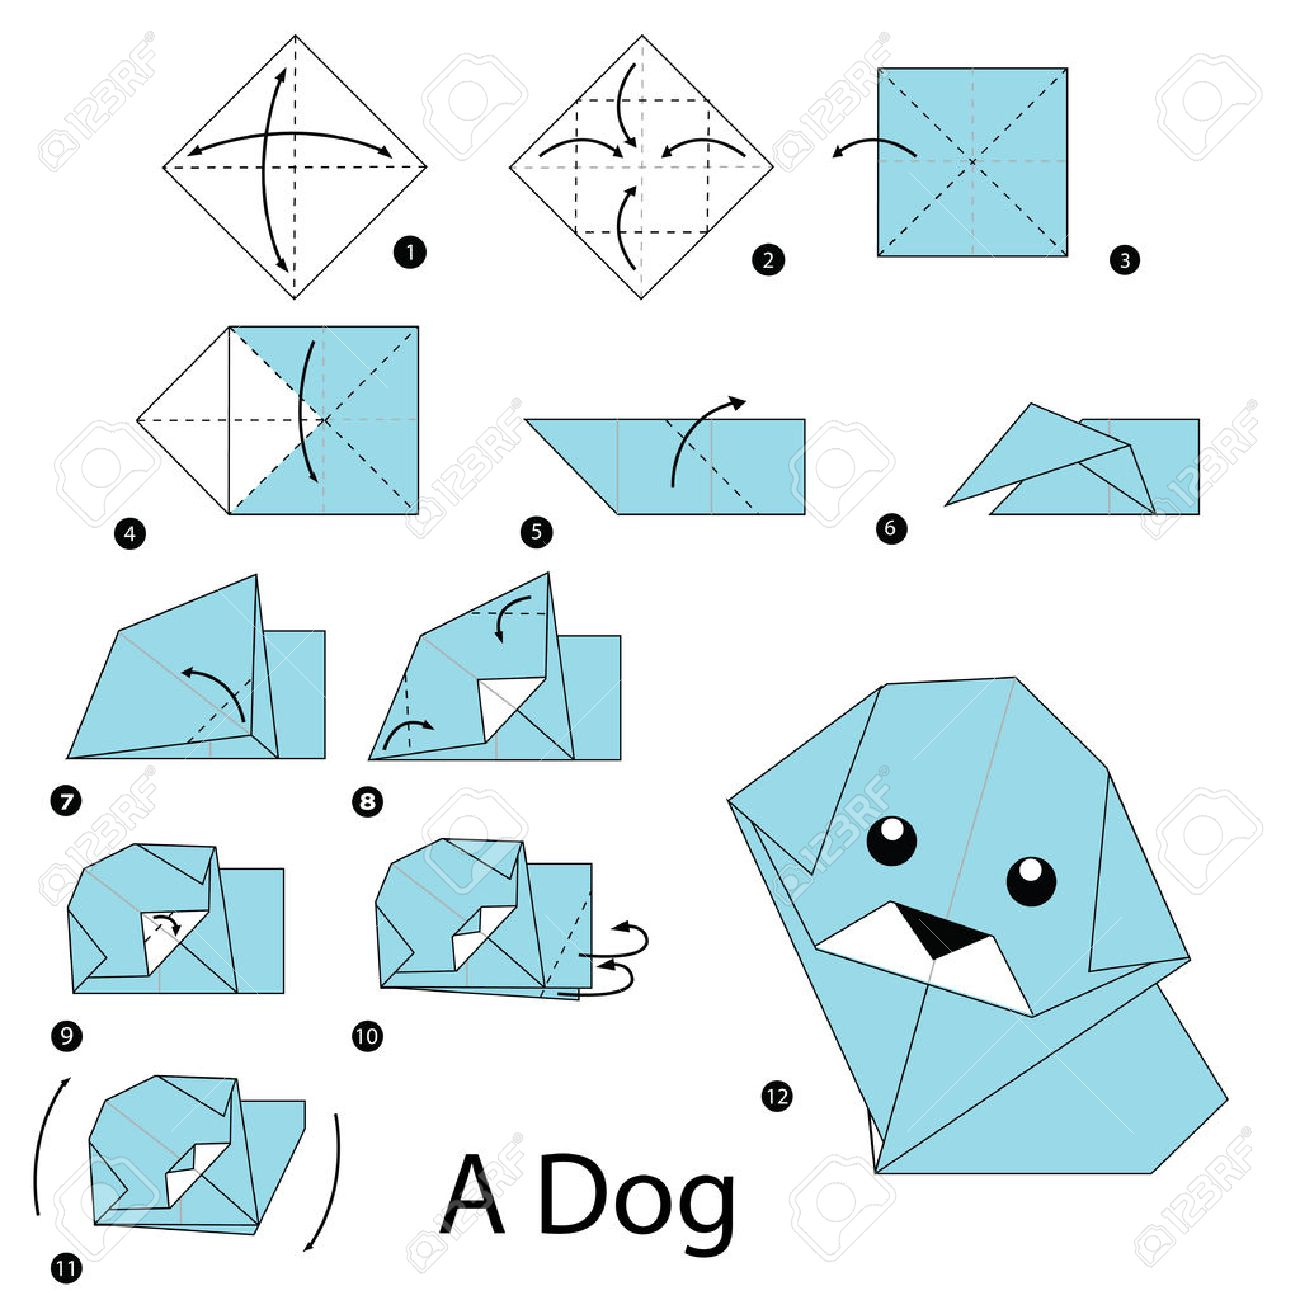 Step by step instructions how to make origami dog royalty free step by step instructions how to make origami dog stock vector 46971247 jeuxipadfo Images